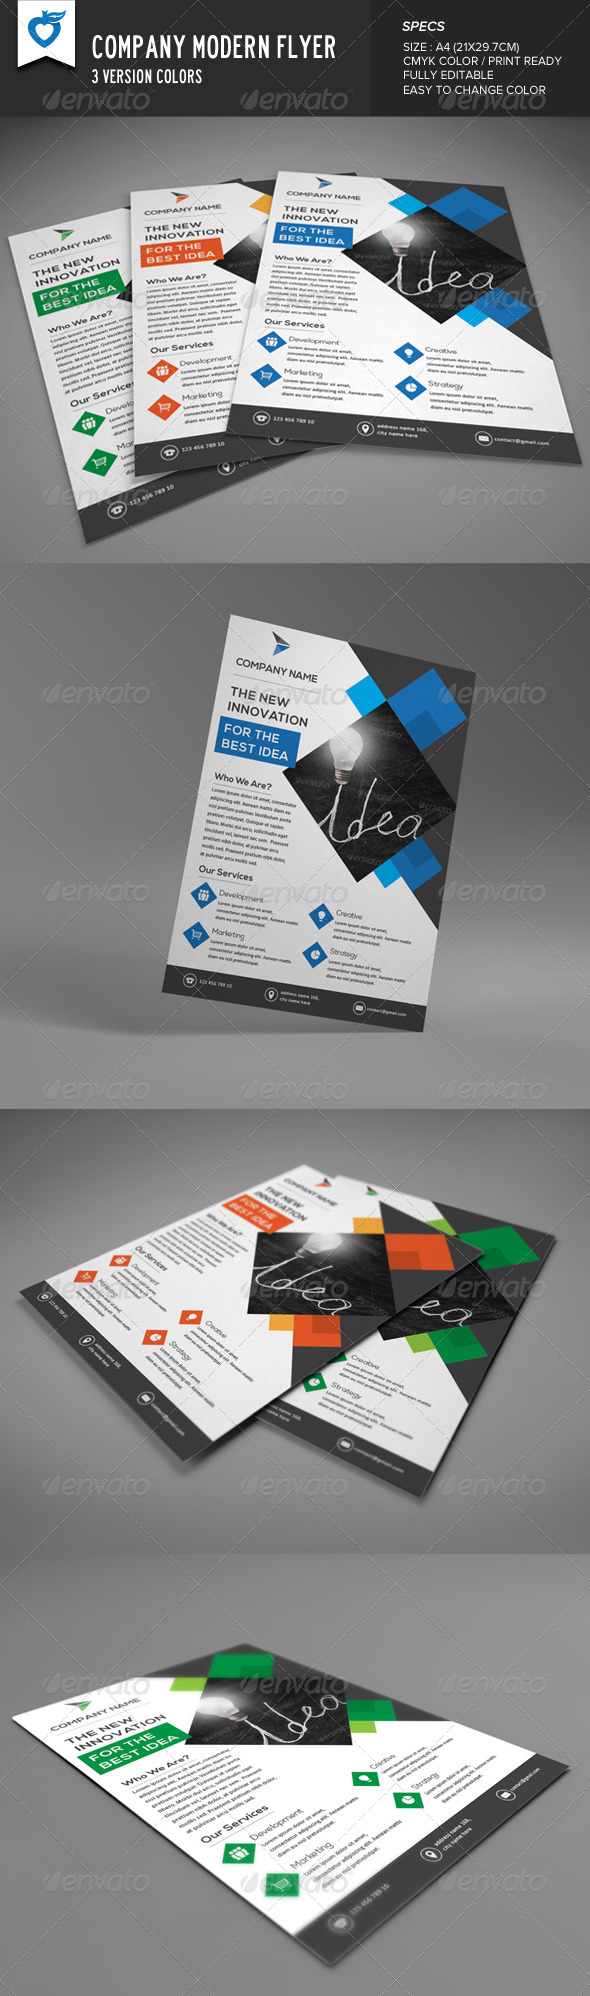 GraphicRiver Company Modern Flyer 8628980